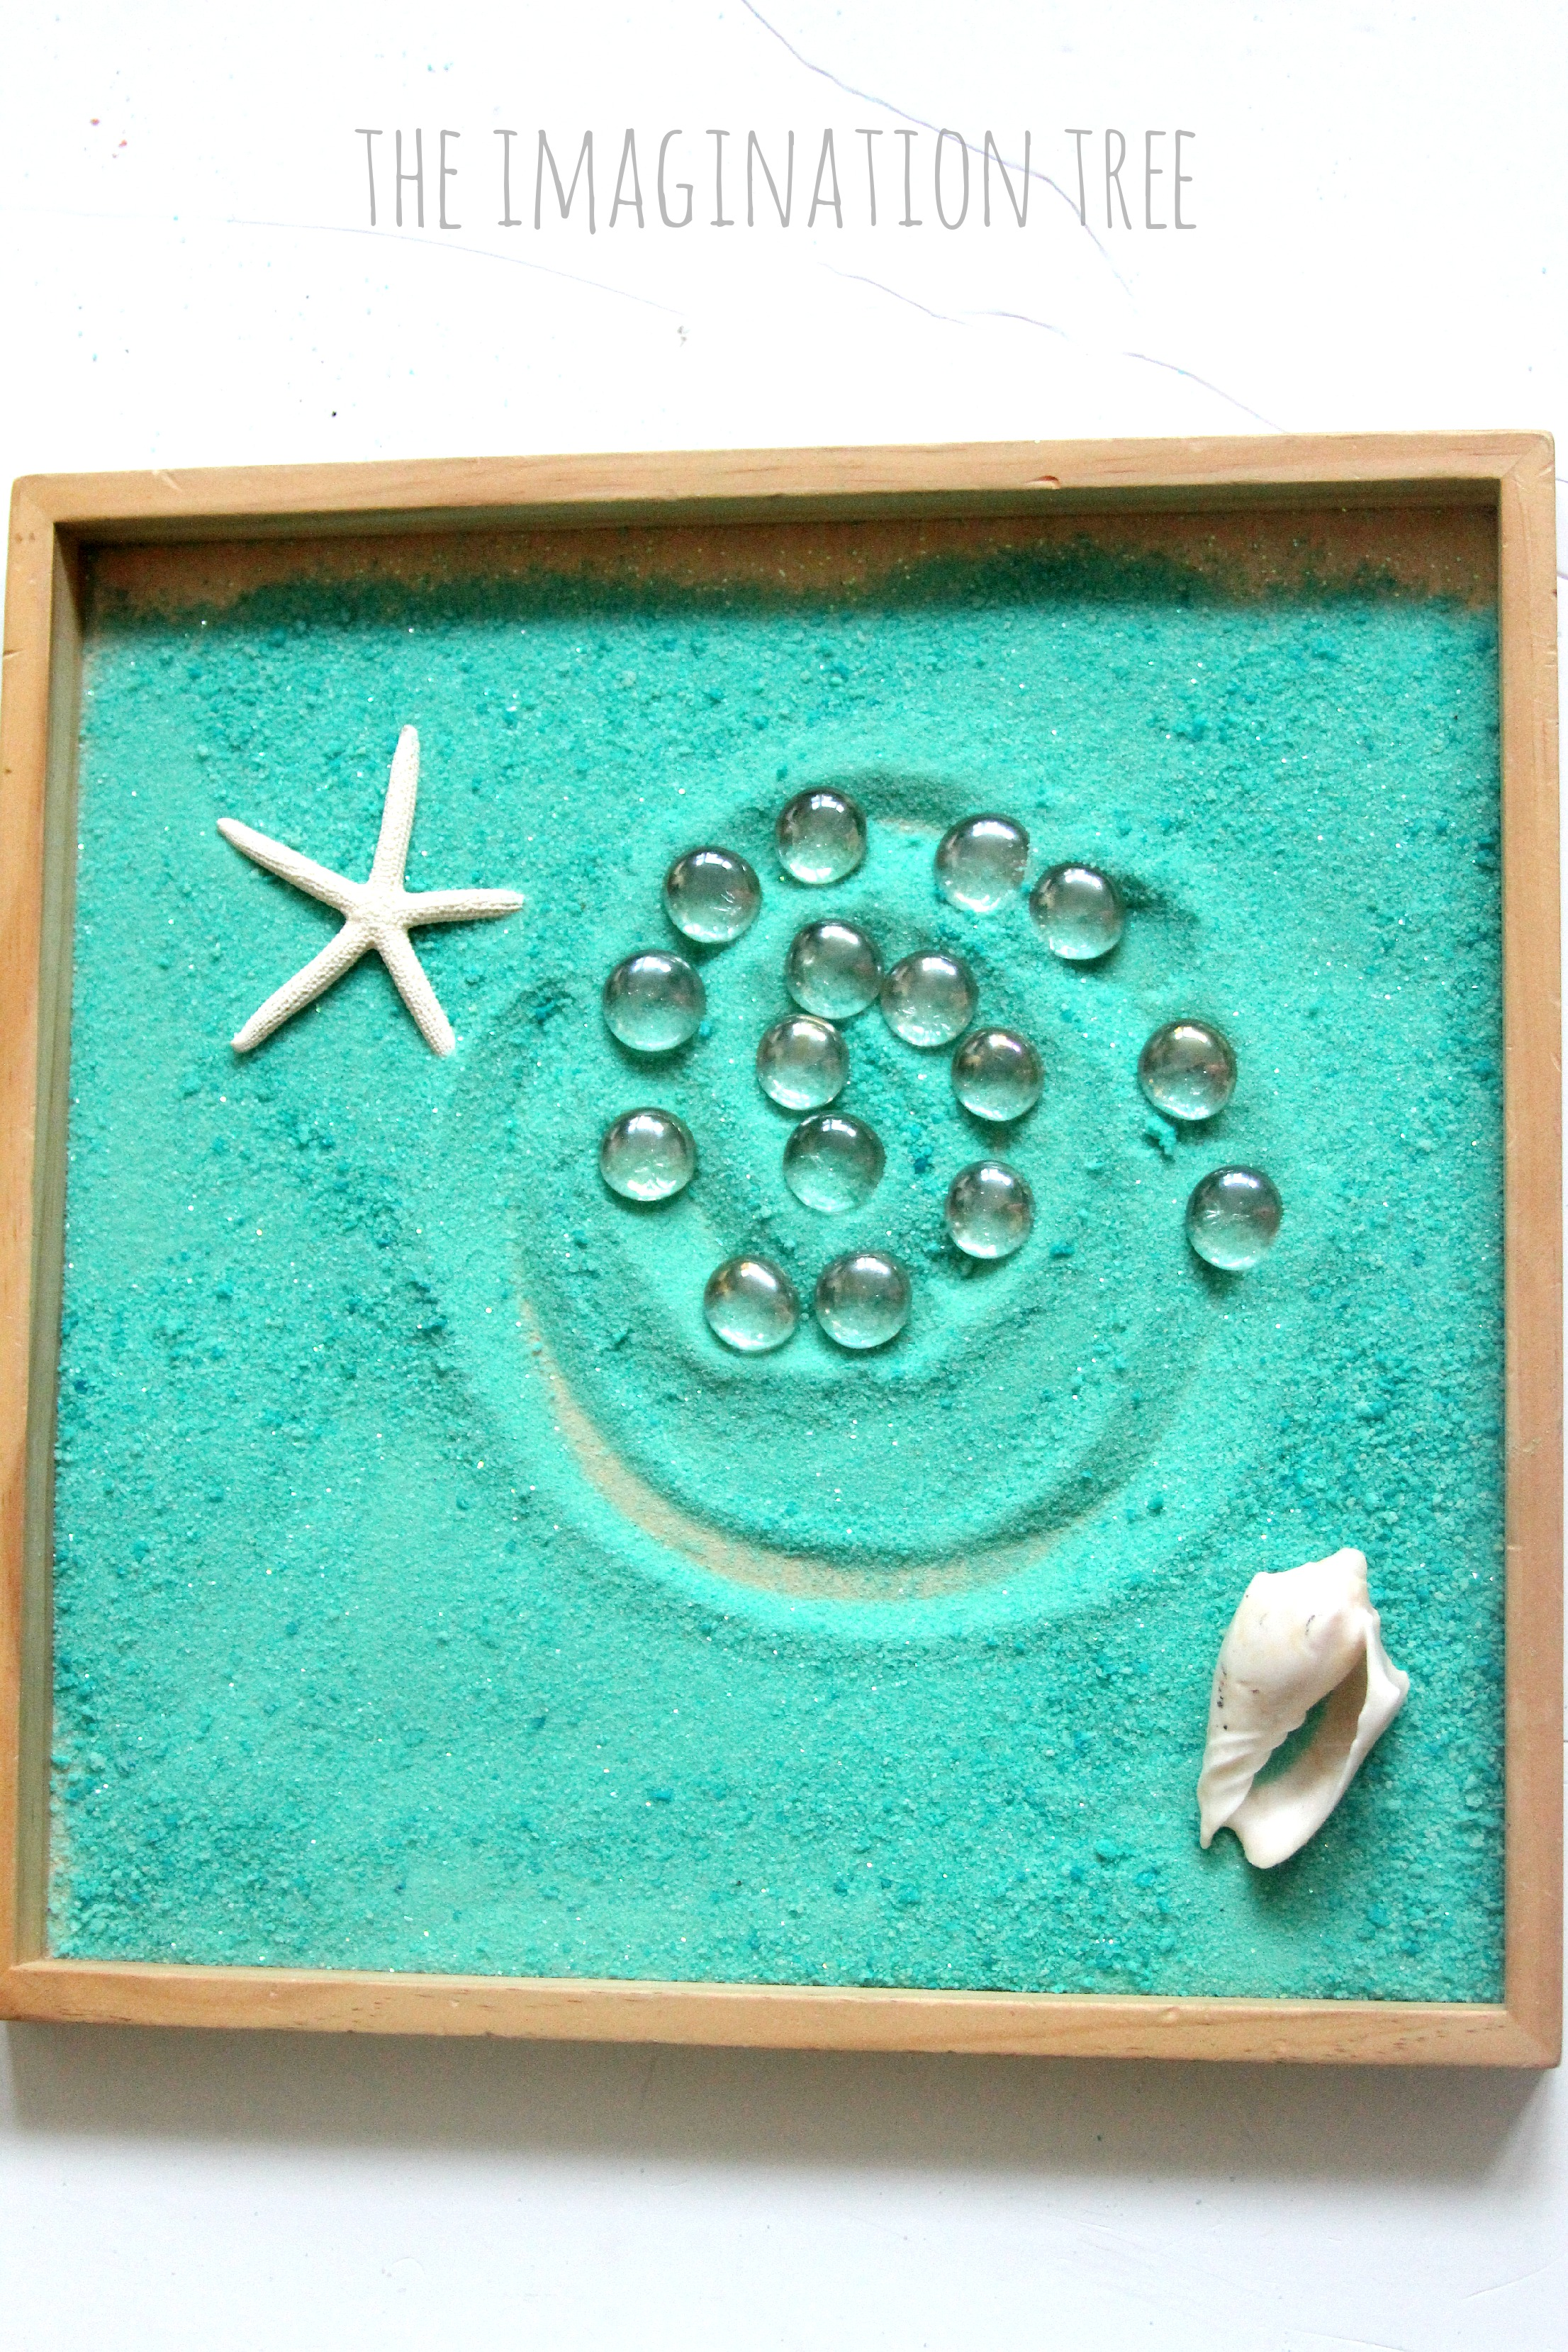 The Making Of Where Do Little Spiders: Ocean Sensory Writing Tray